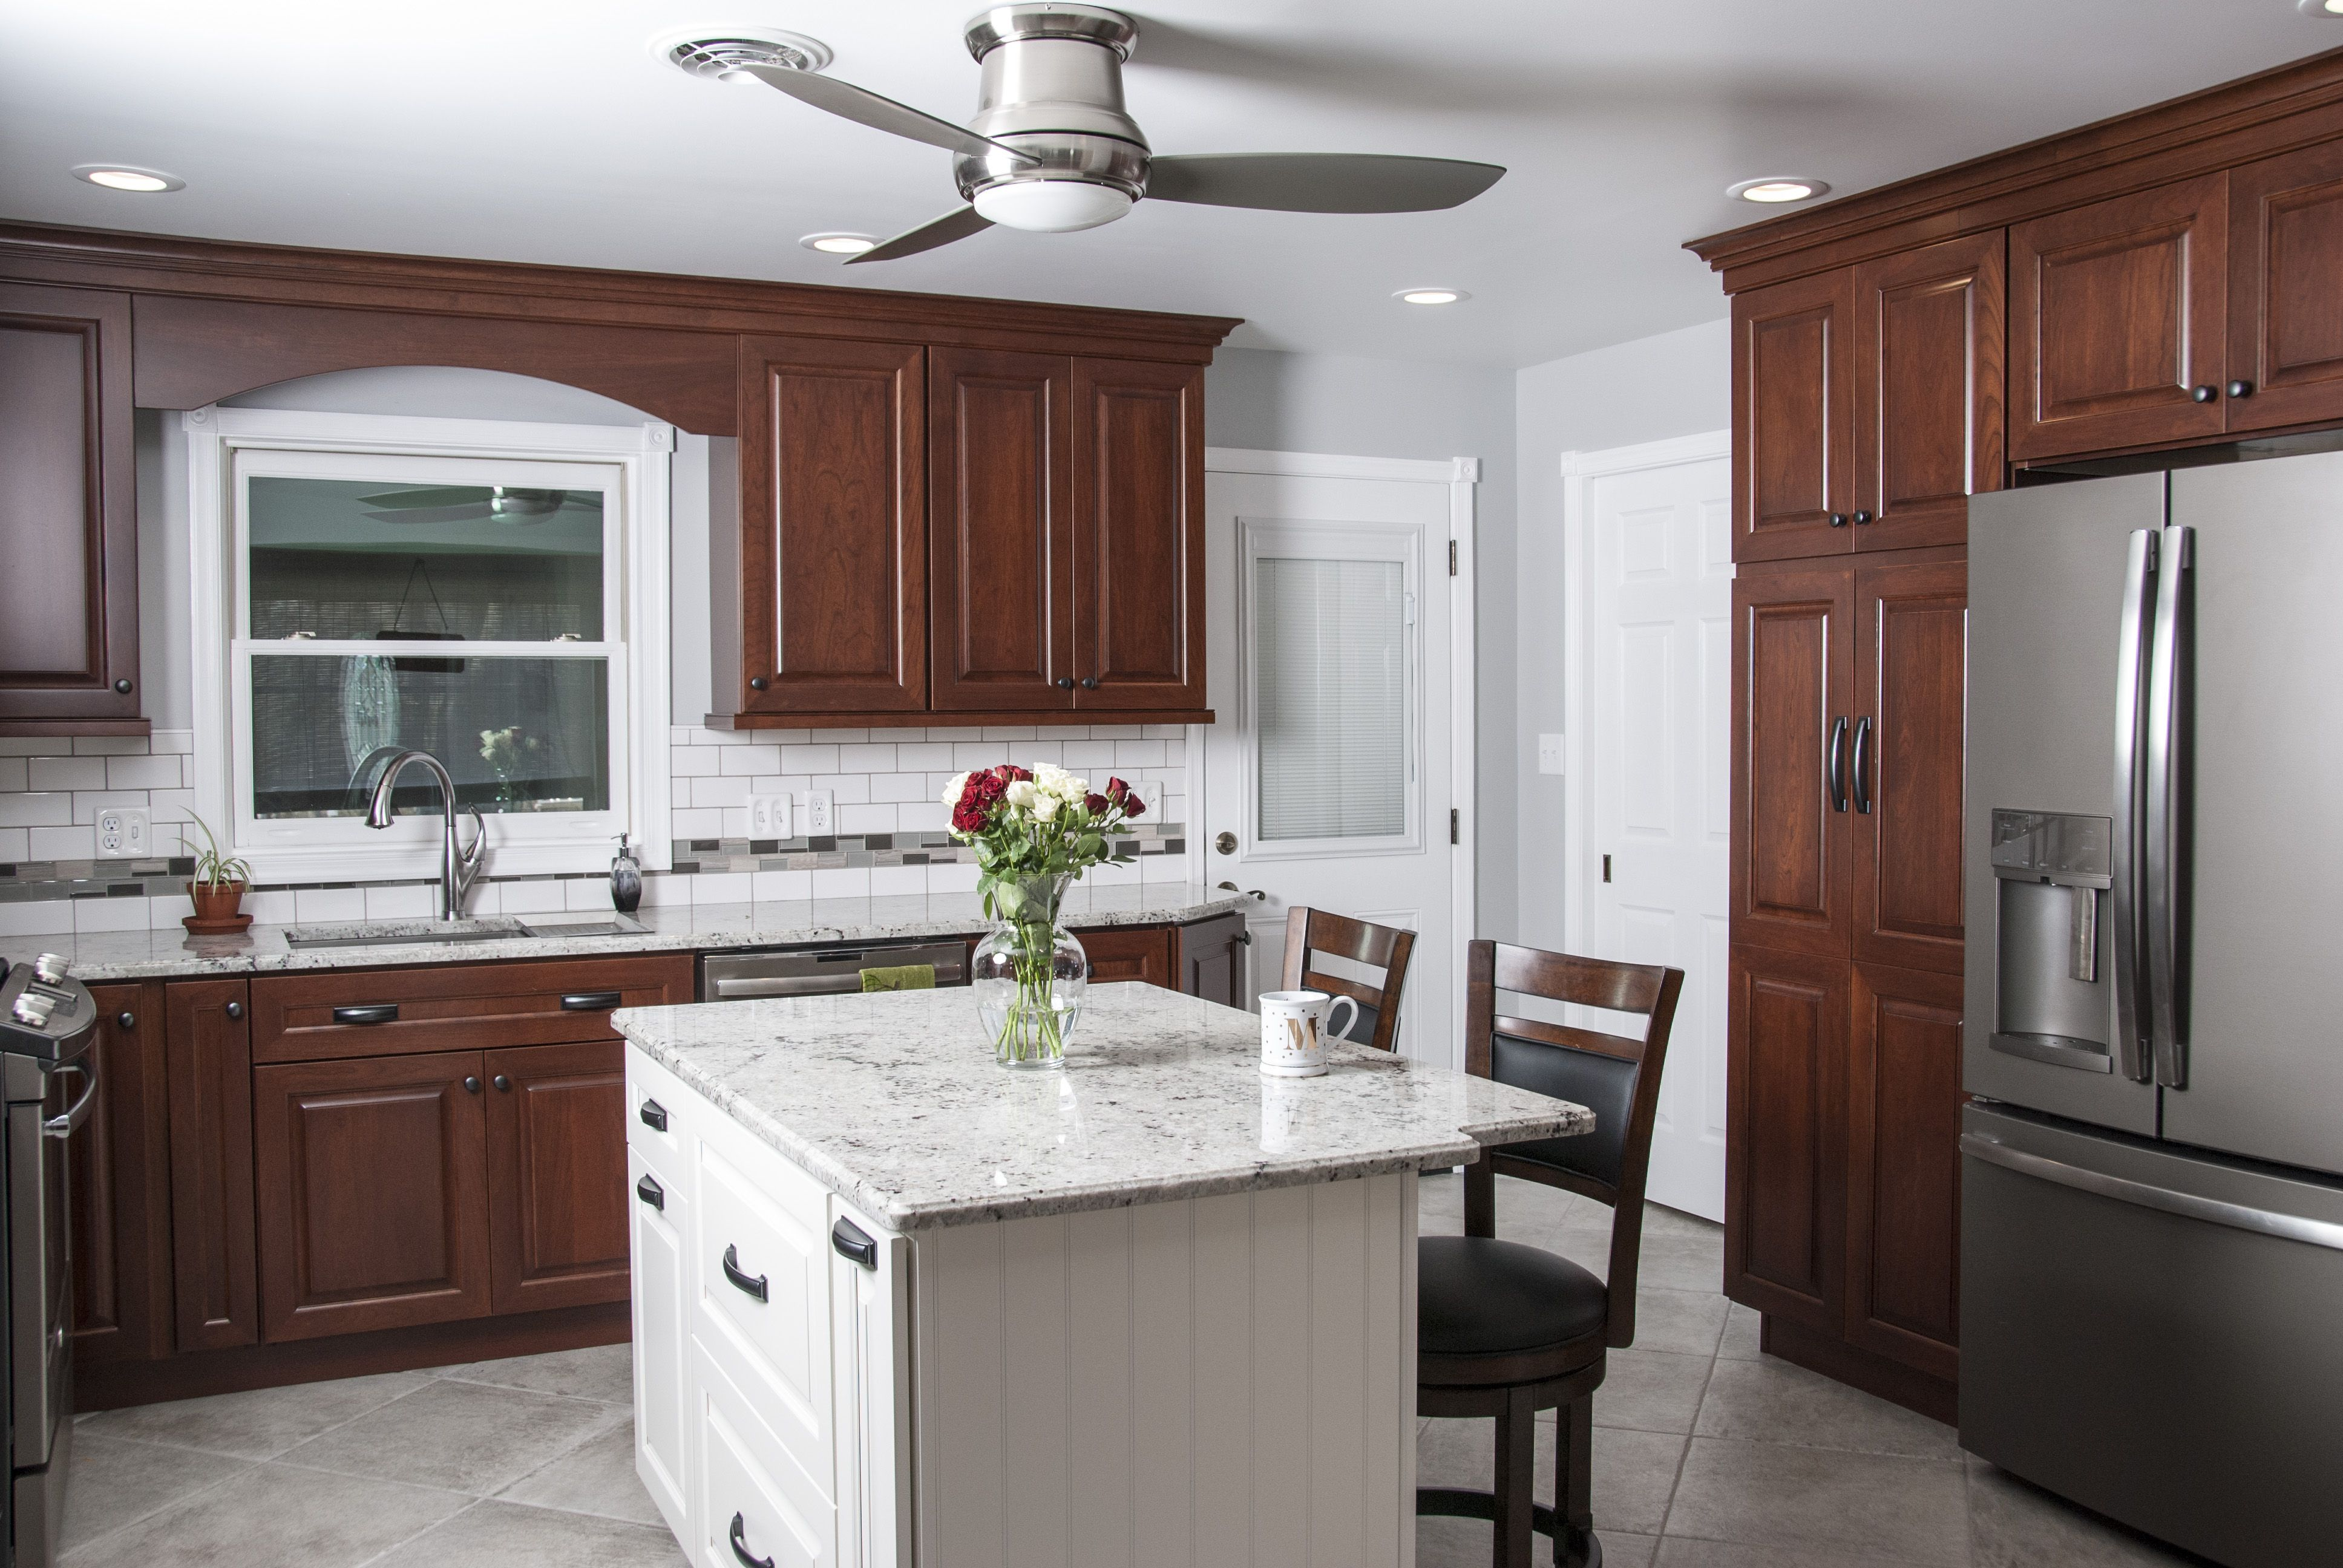 12 Exceptional Ideas Of The Cherry Kitchen Cabinets In Modern Kitchen Contrasting Kitchen Island Cherry Wood Kitchen Cabinets New Kitchen Cabinets